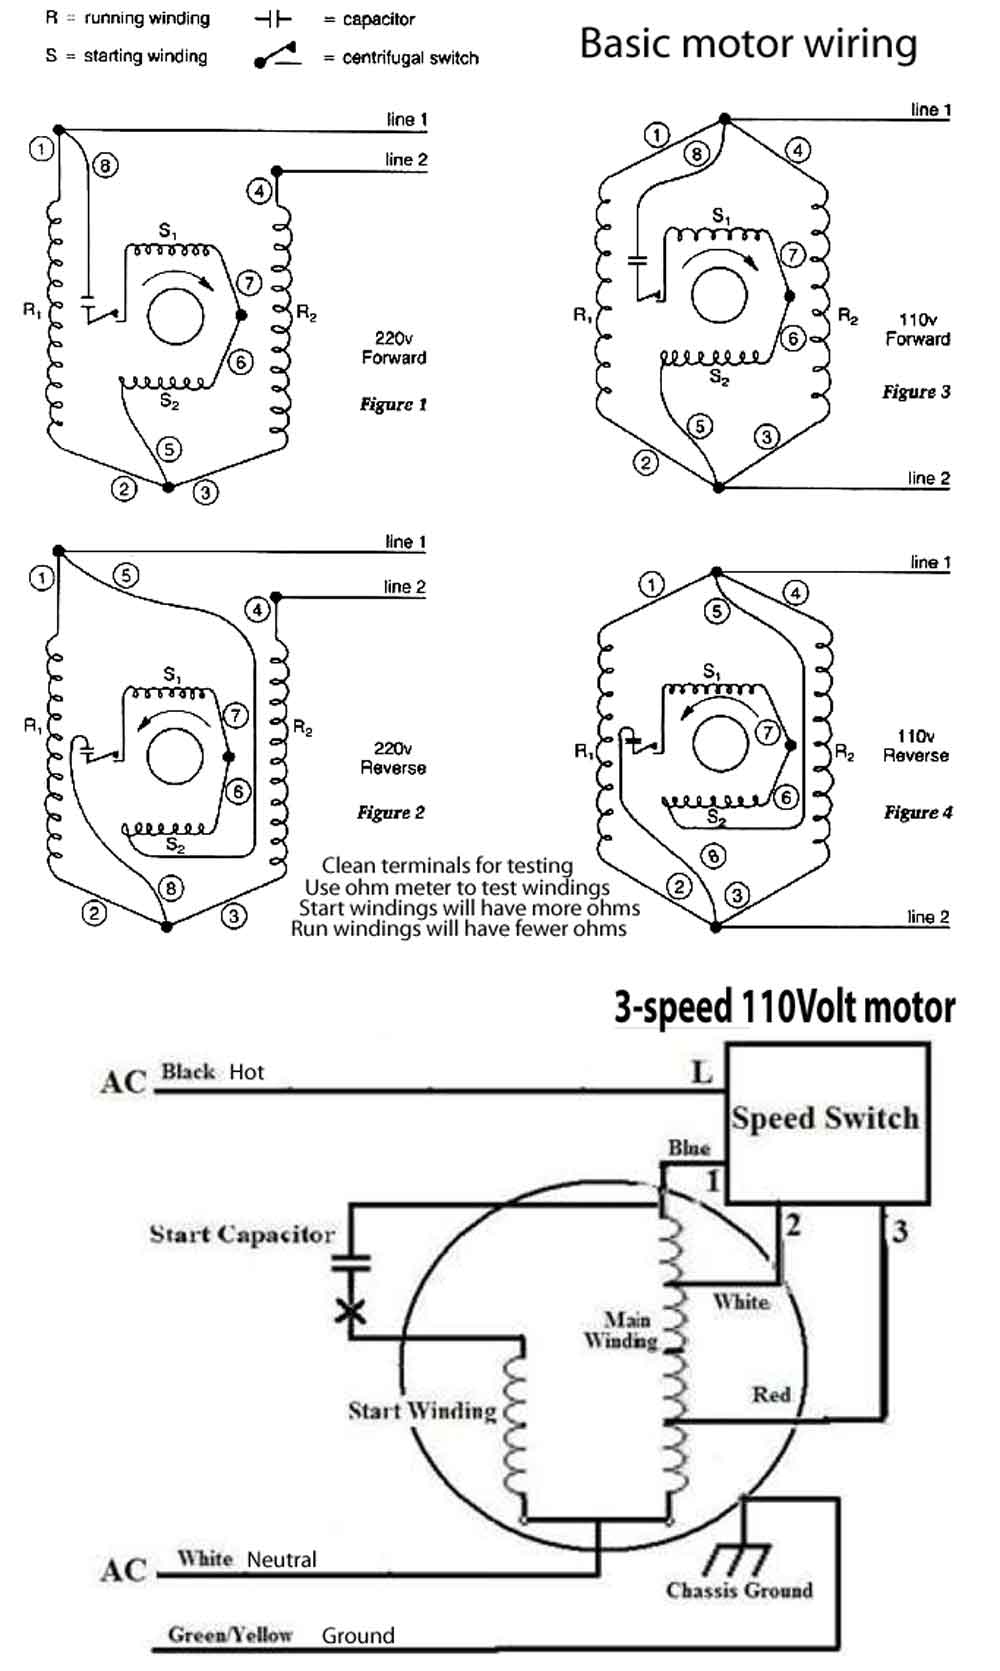 Motor wiring 500 how to wire 3 speed fan switch 480 Volt 6 Lead Motor at bayanpartner.co